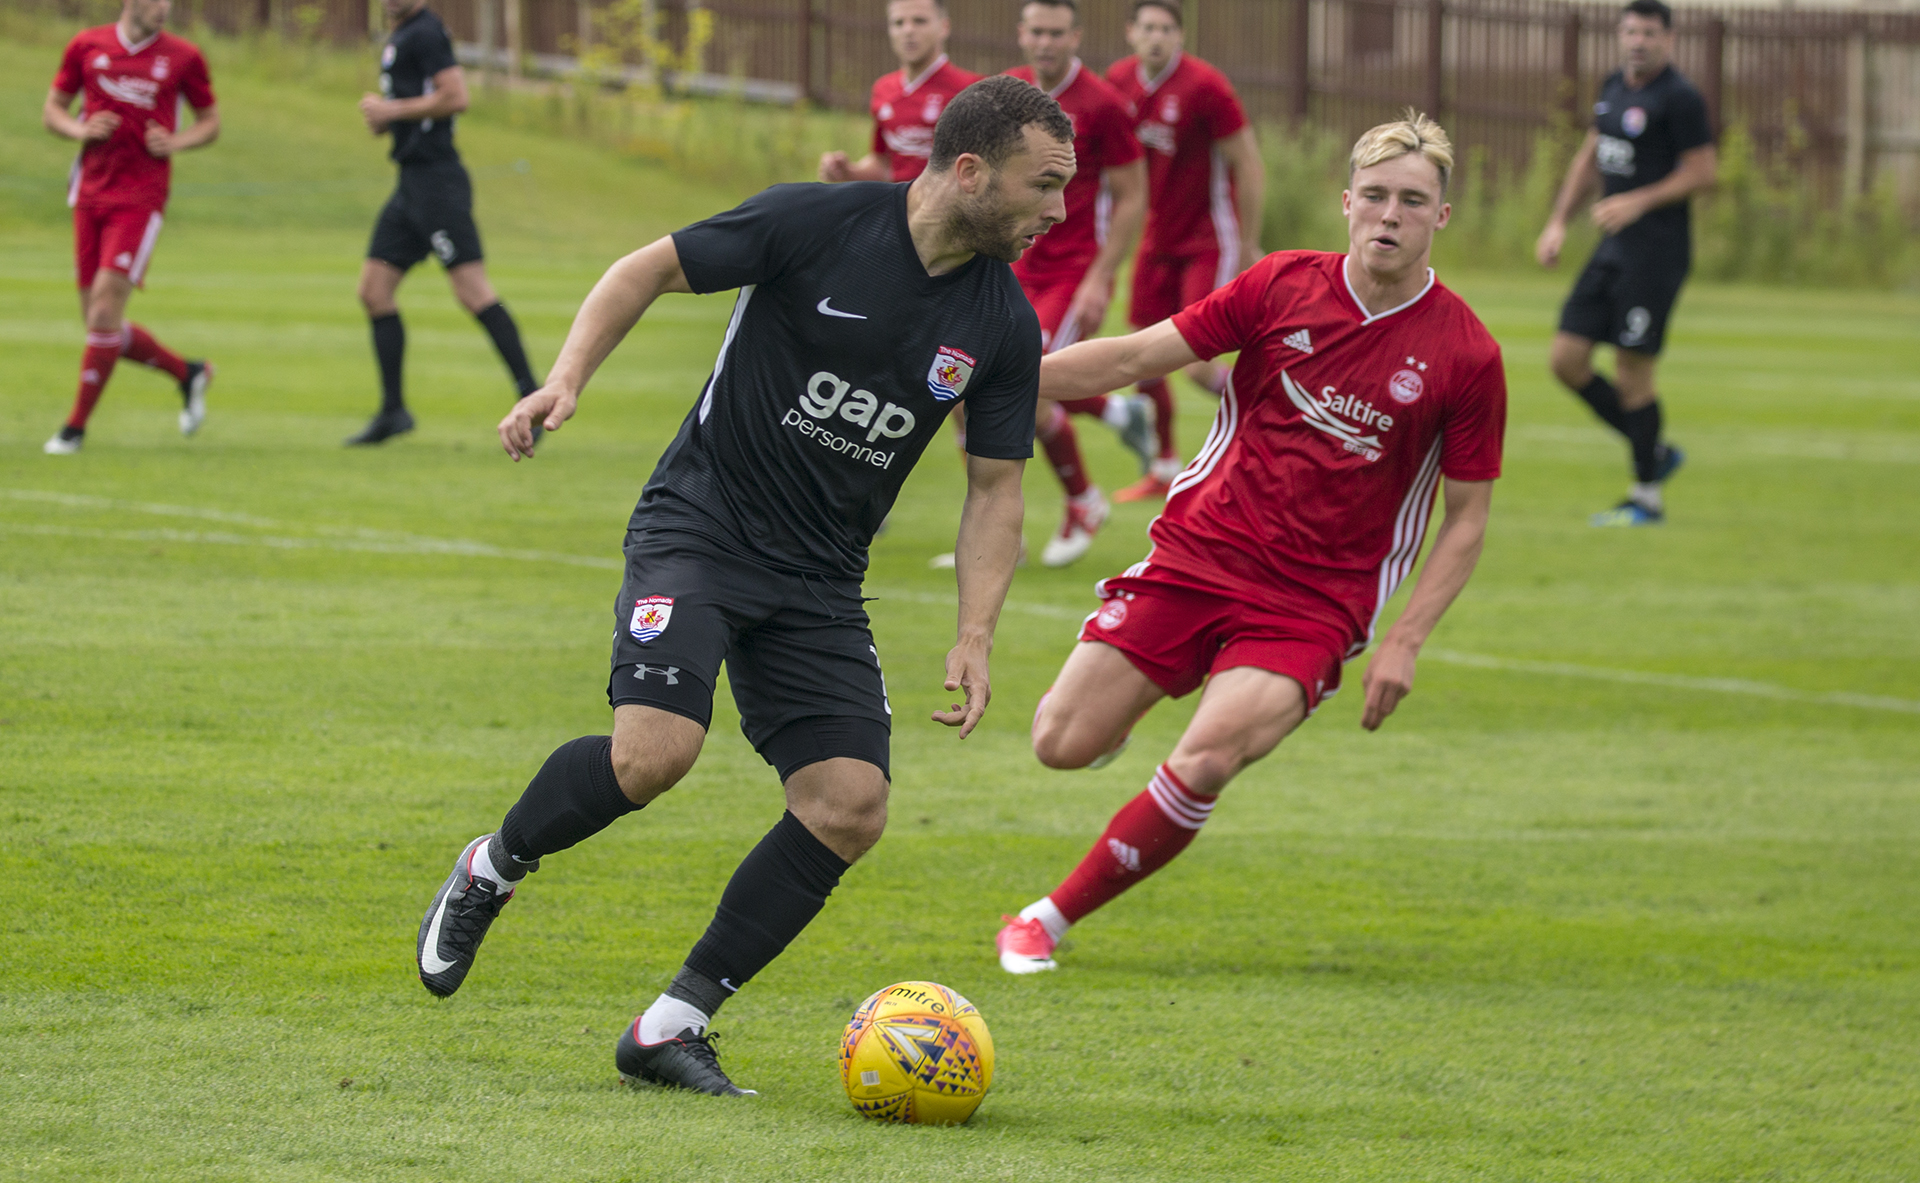 Ryan Wignall looks to get on the attack as he returns to The Nomads | © NCM Media